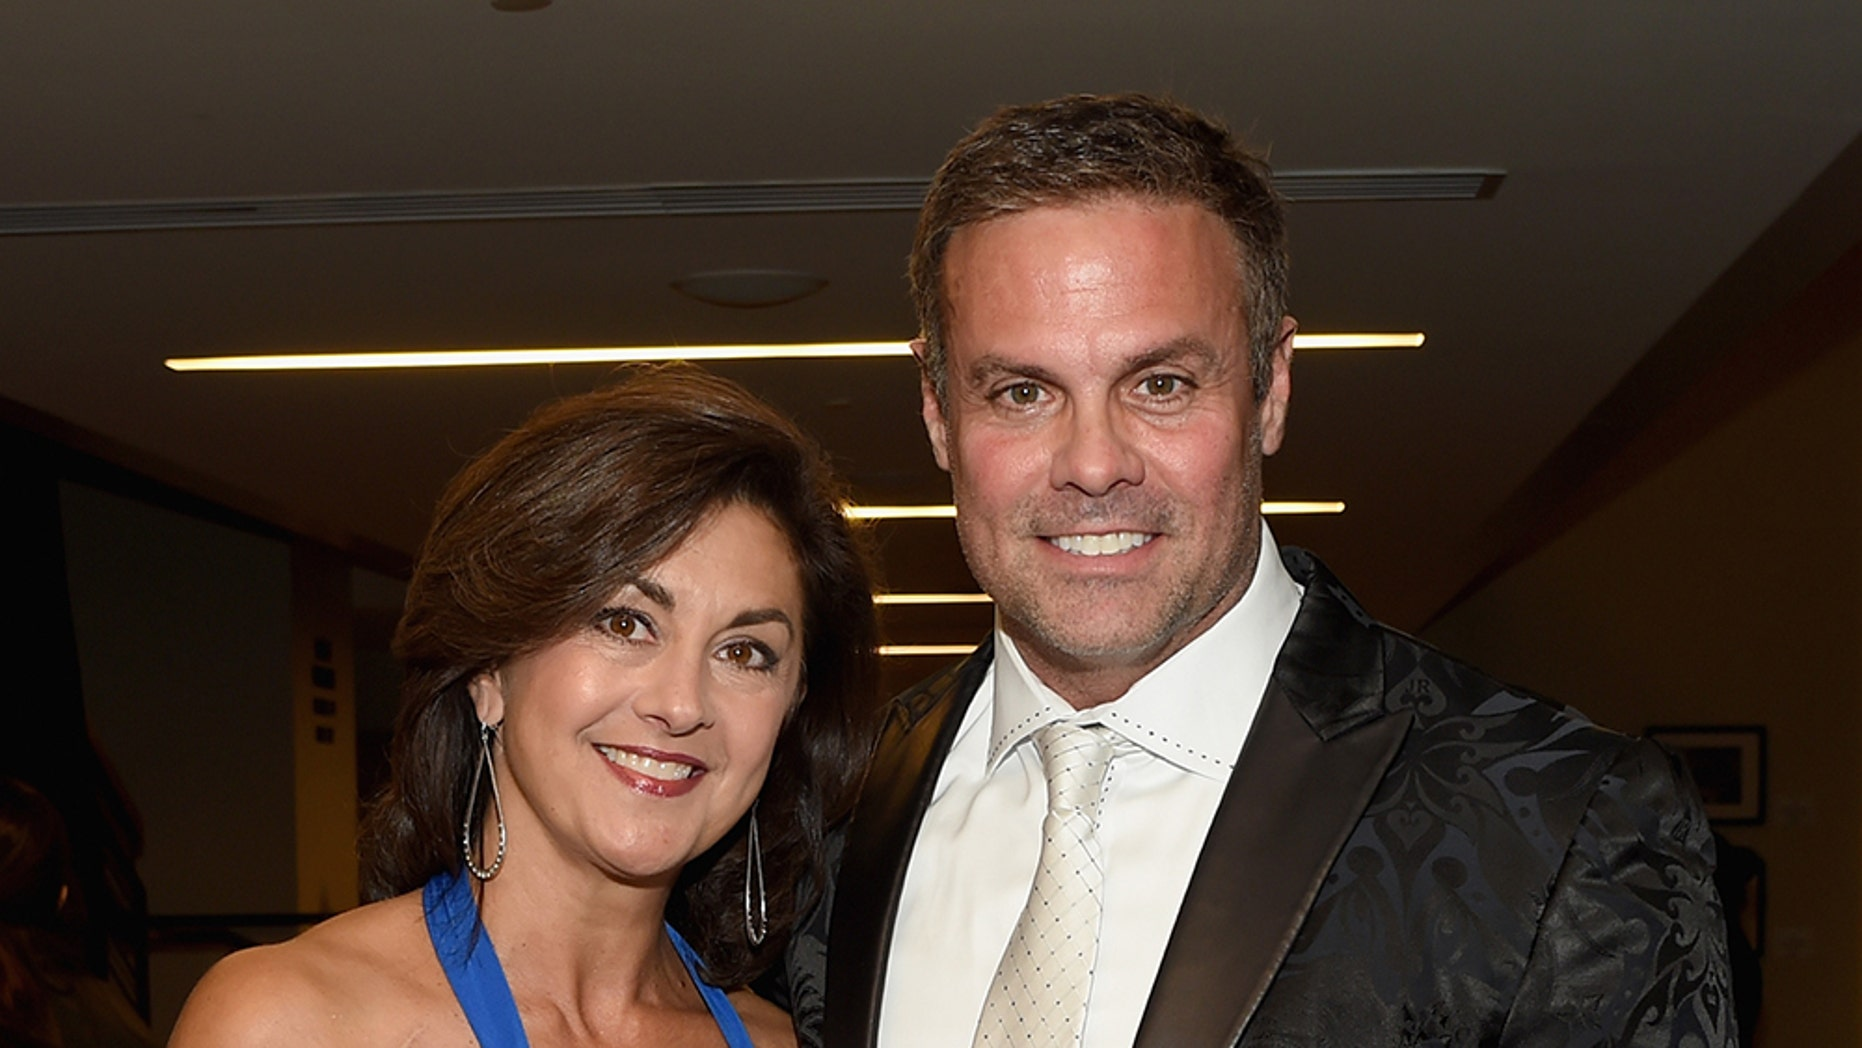 Angie Gentry and Troy Gentry attend The 2016 Medallion Ceremony at the Country Music Hall of Fame and Museum on October 16, 2016 in Nashville, Tennessee. — Getty